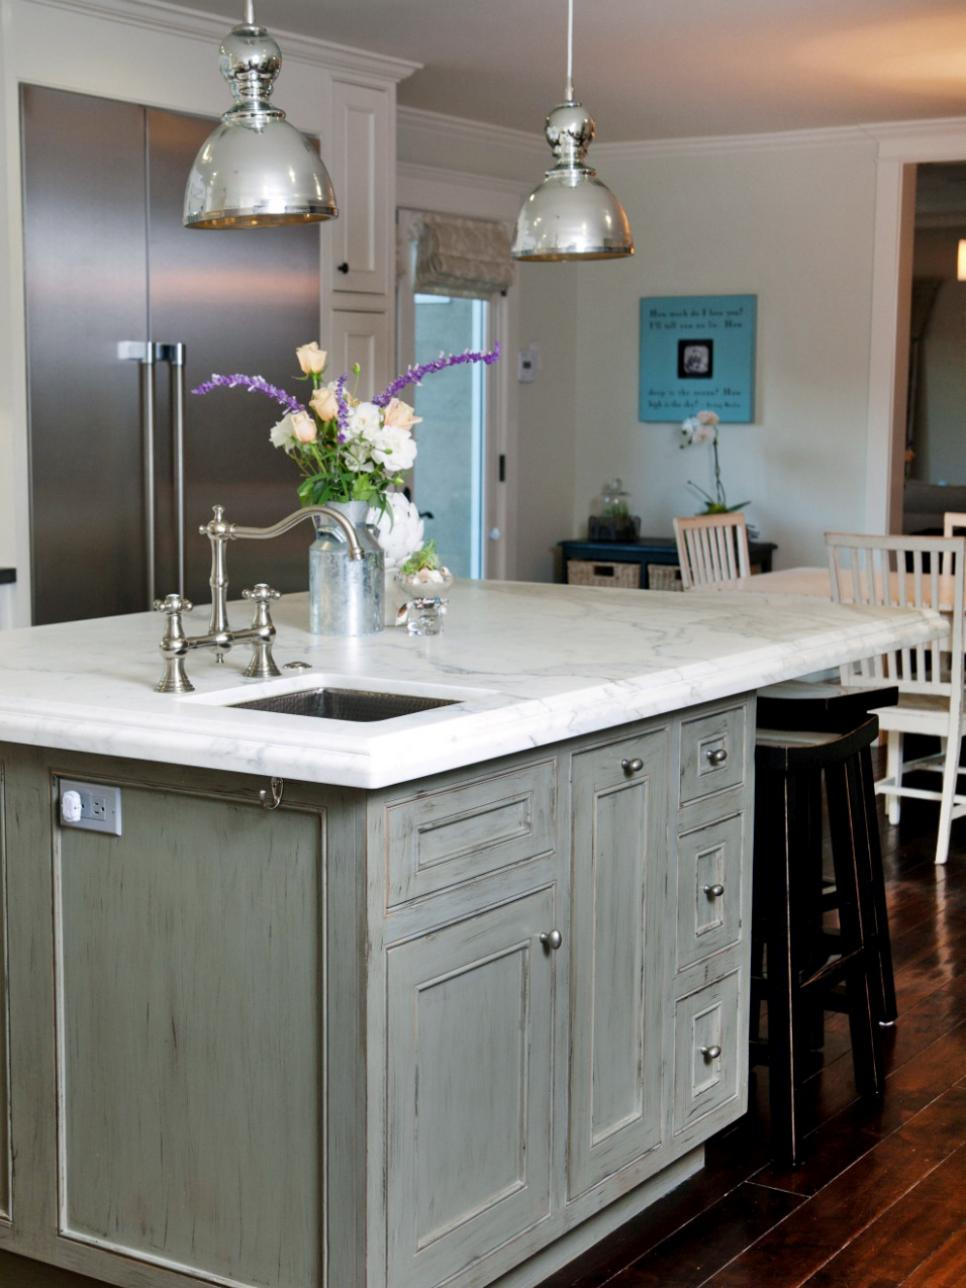 Original_Darci-Goodman-gray-coastal-kitchen_s3x4.jpg.rend.hgtvcom.966.1288.jpeg